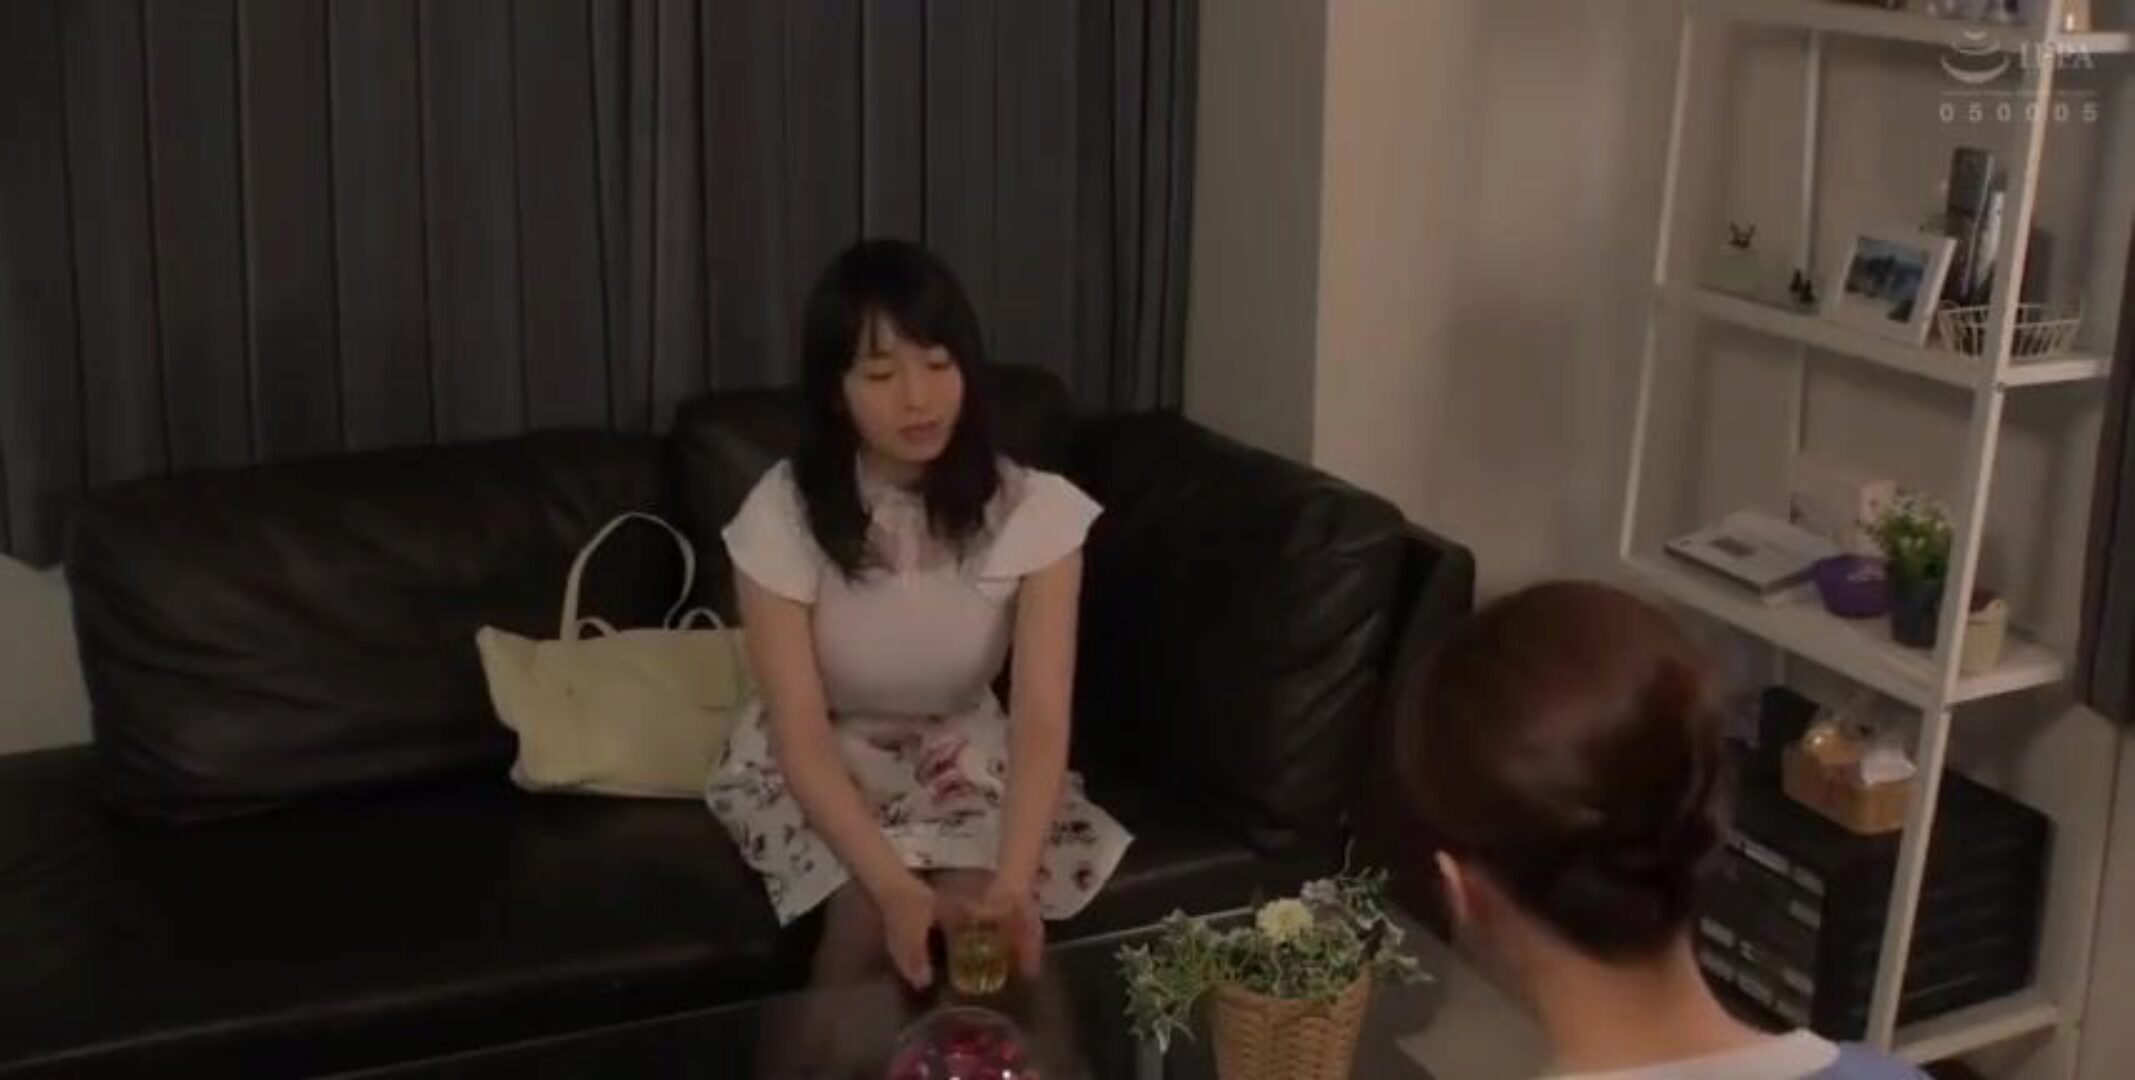 Japanese Lesbian. Beautiful Japanese Married Women with Lactating Breasts Seduced into Lesbian Sex v